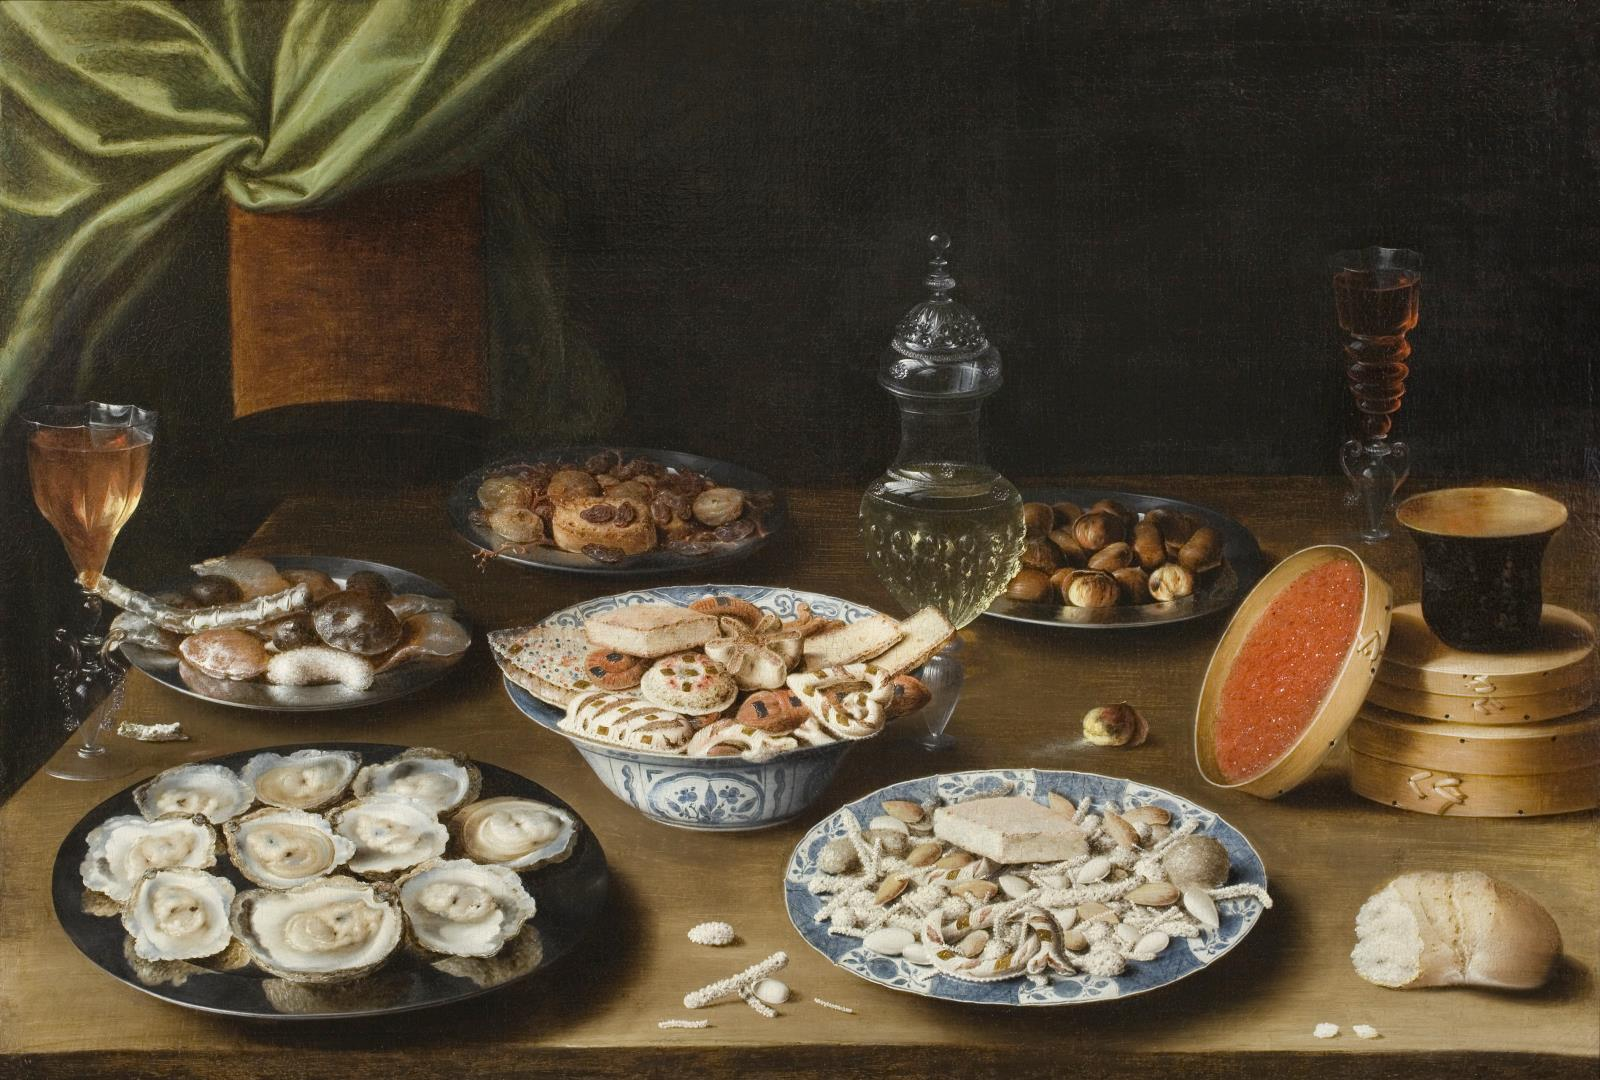 Osias Beert (1580-1623), Still Life with Various Vessels on a Table, ca. 1610. Promised gift of Susan and Matthew Weatherbie, in support of the Center for Netherlandish Art